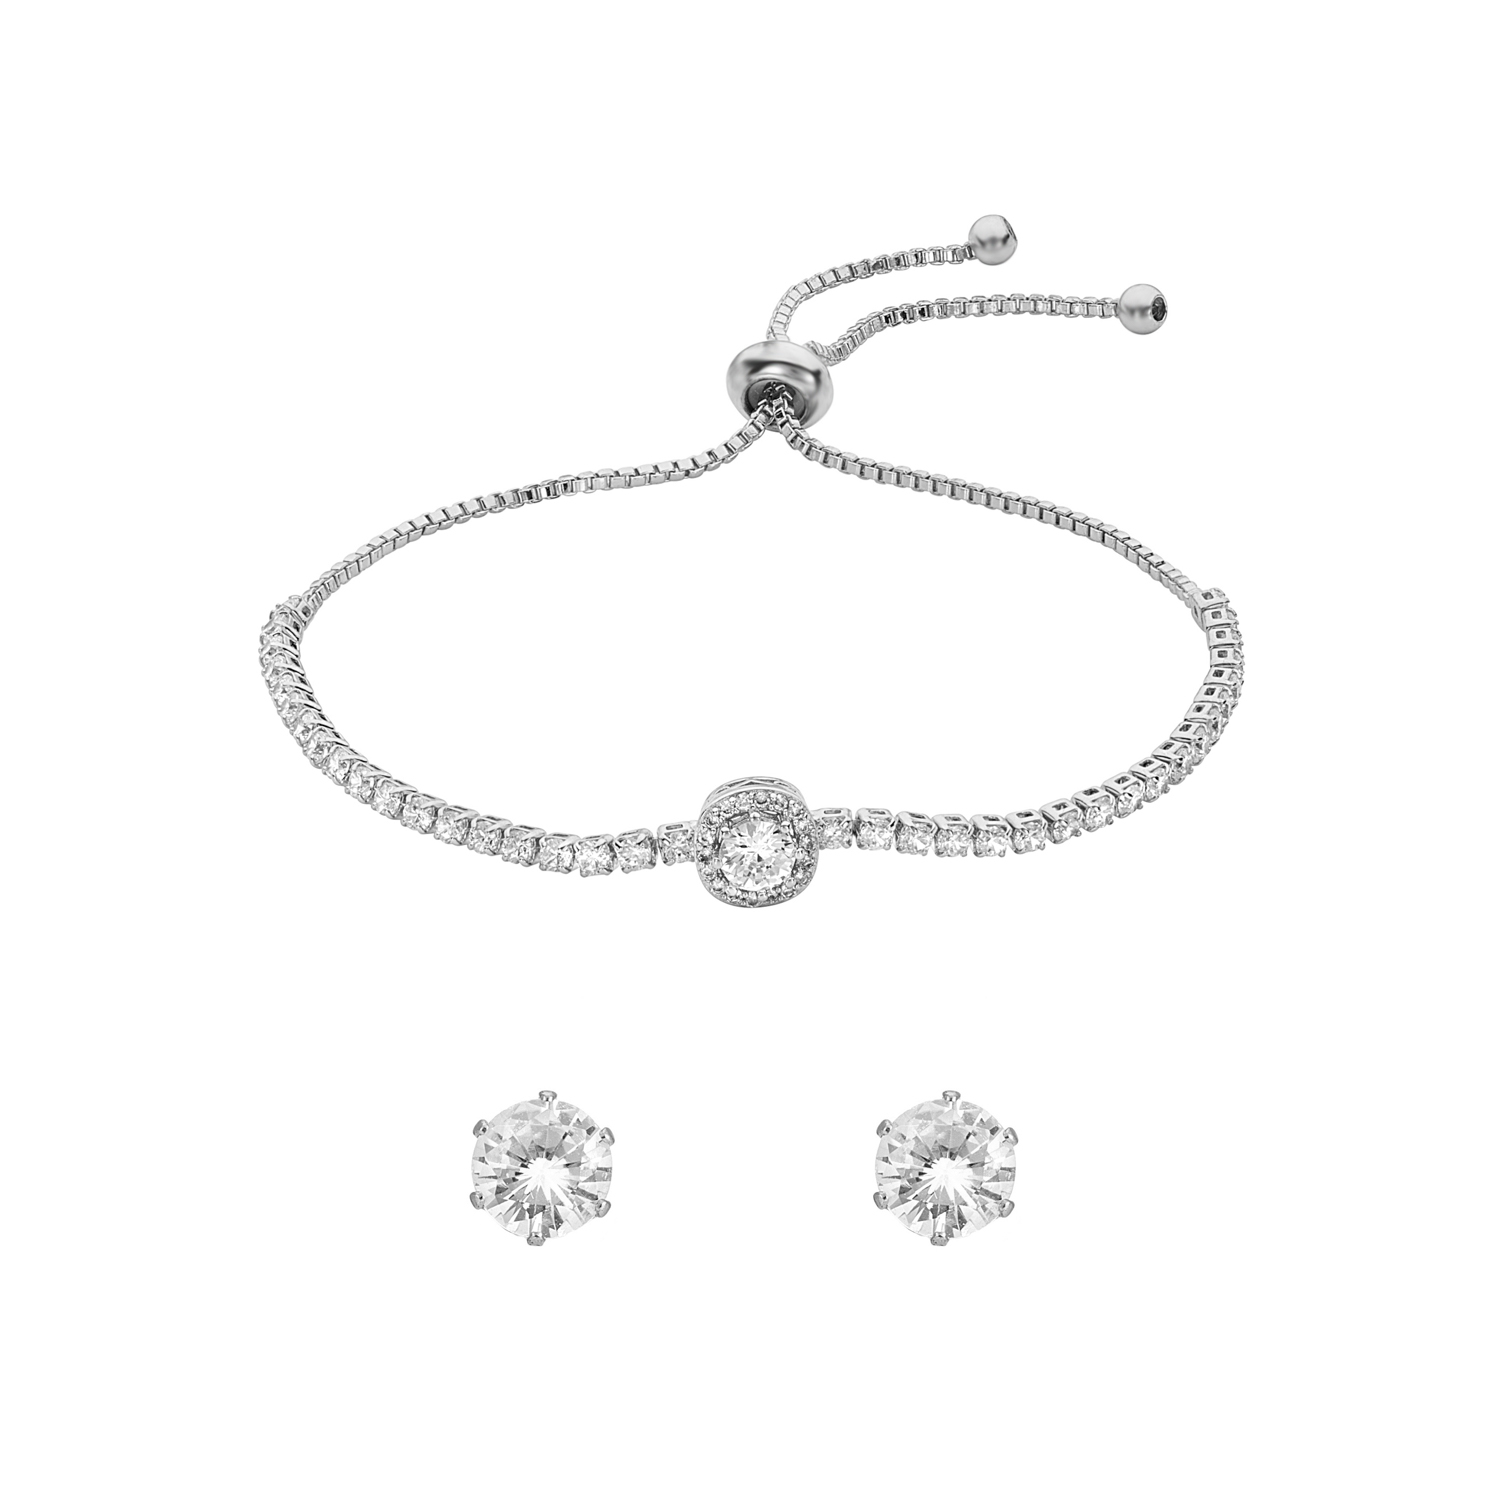 SILVER Iris Toggle Crystal Bracelet Gift Set